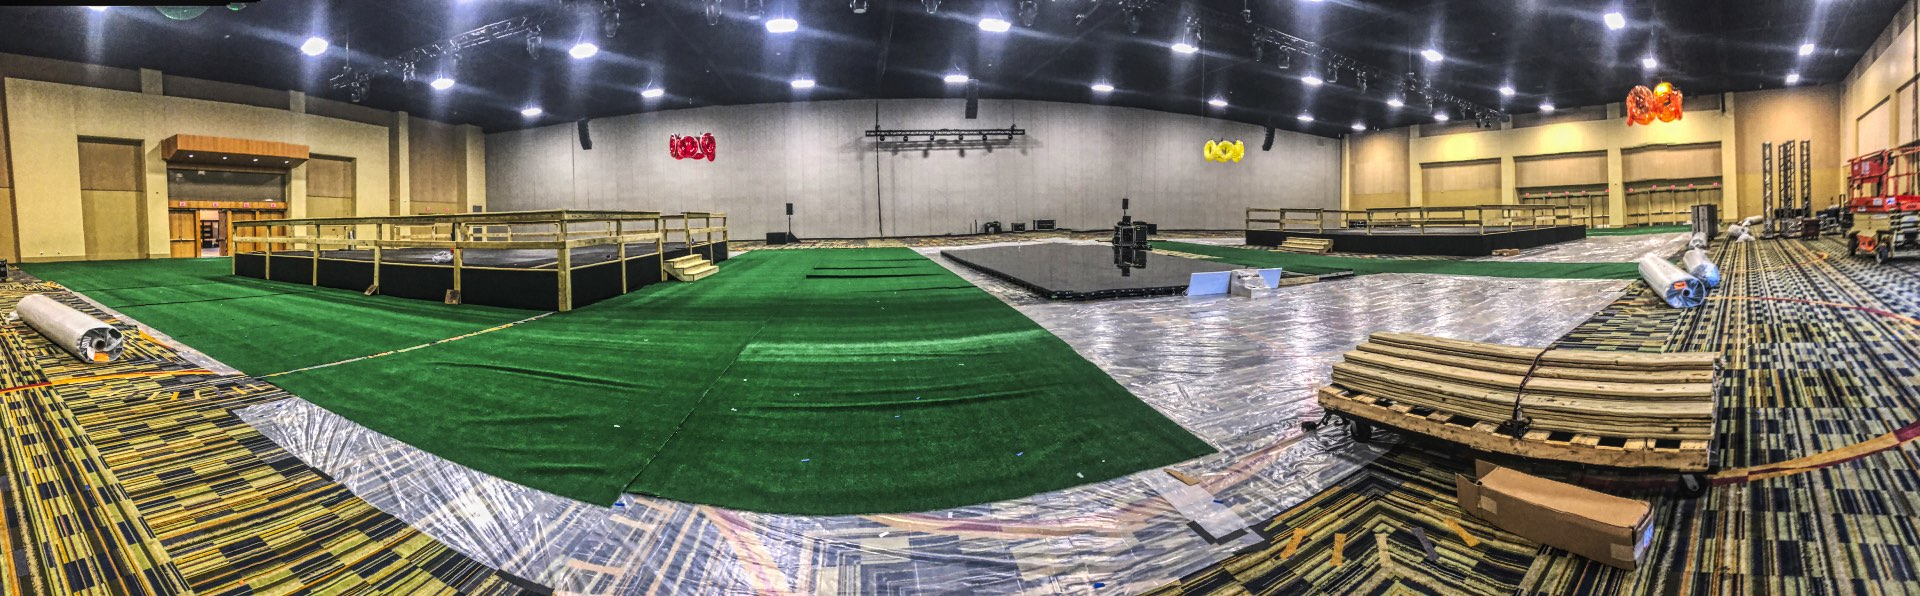 Installing the Interactive LED Pool Stage at the Orlando World Center Marriott